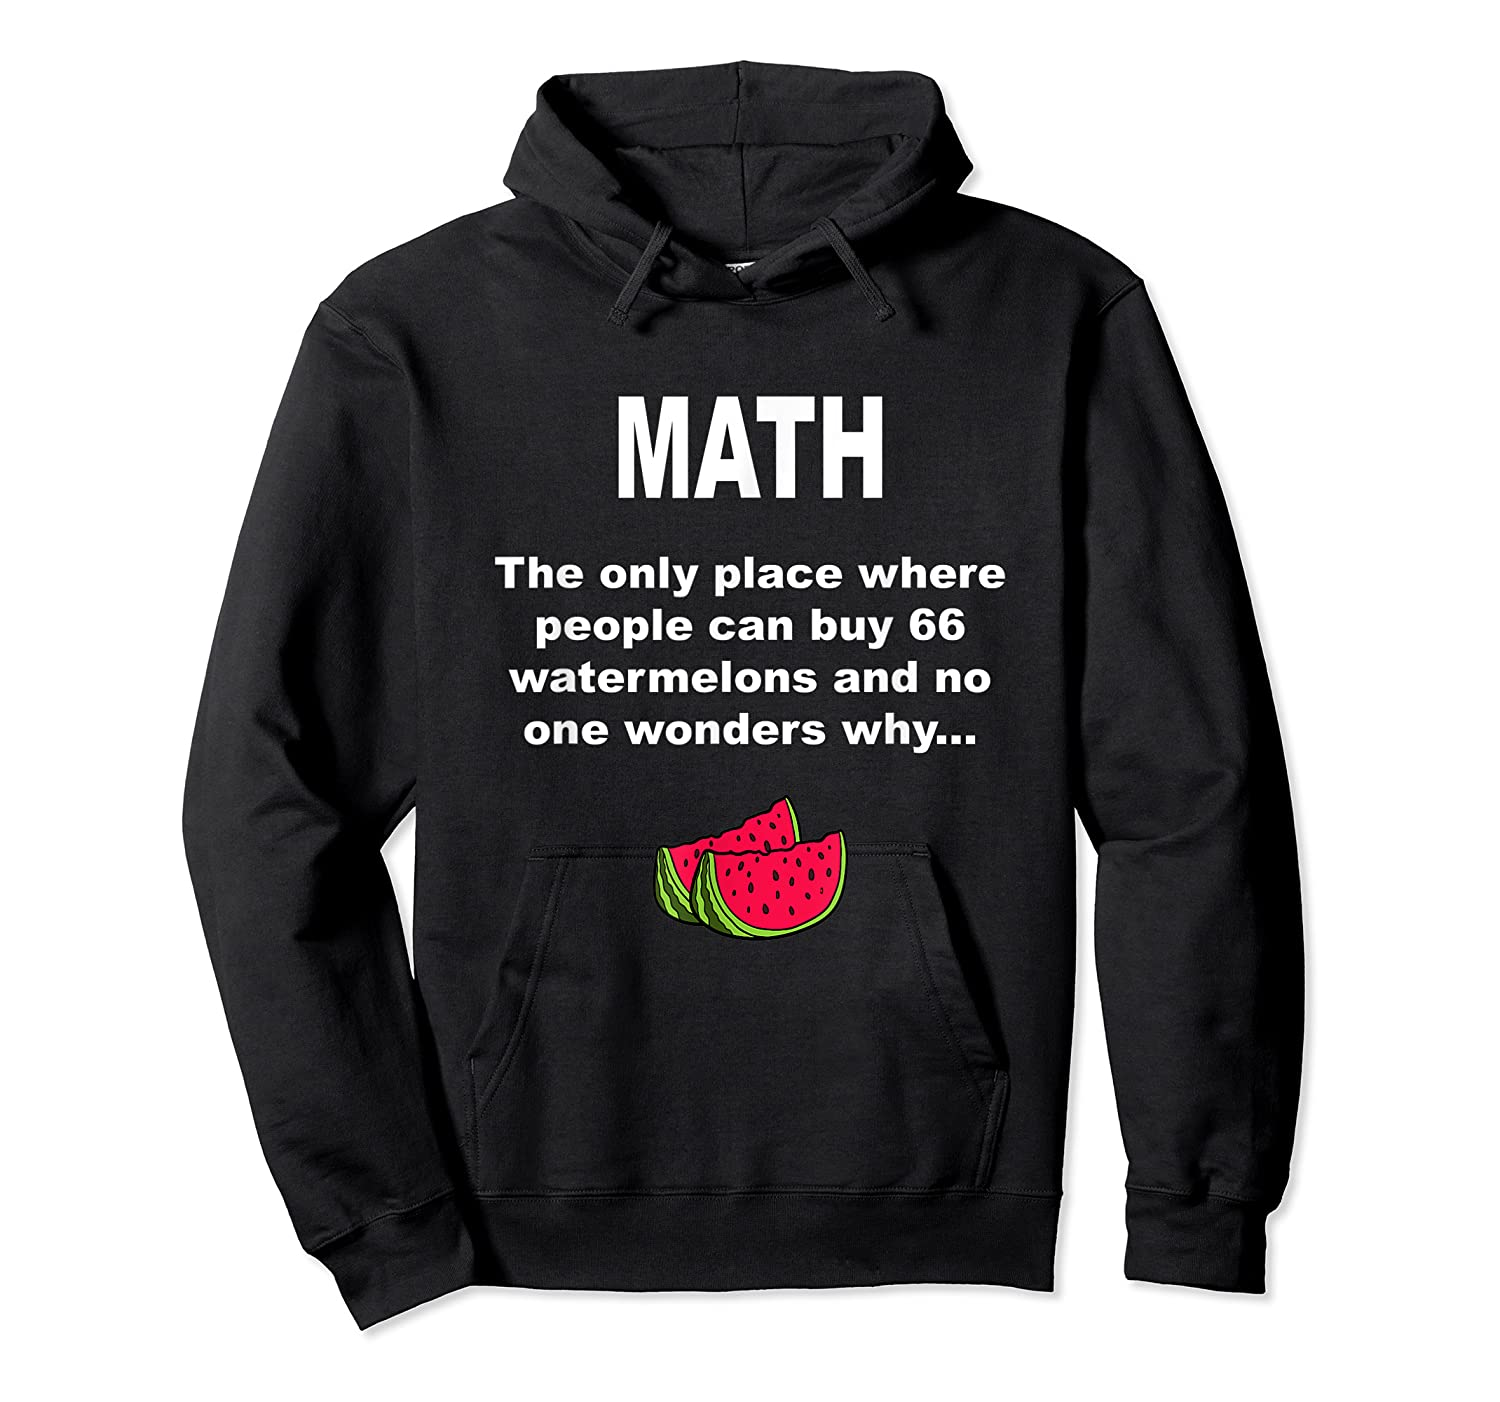 Funny Watermelons Math Gift With Humor For Tea Shirts Unisex Pullover Hoodie